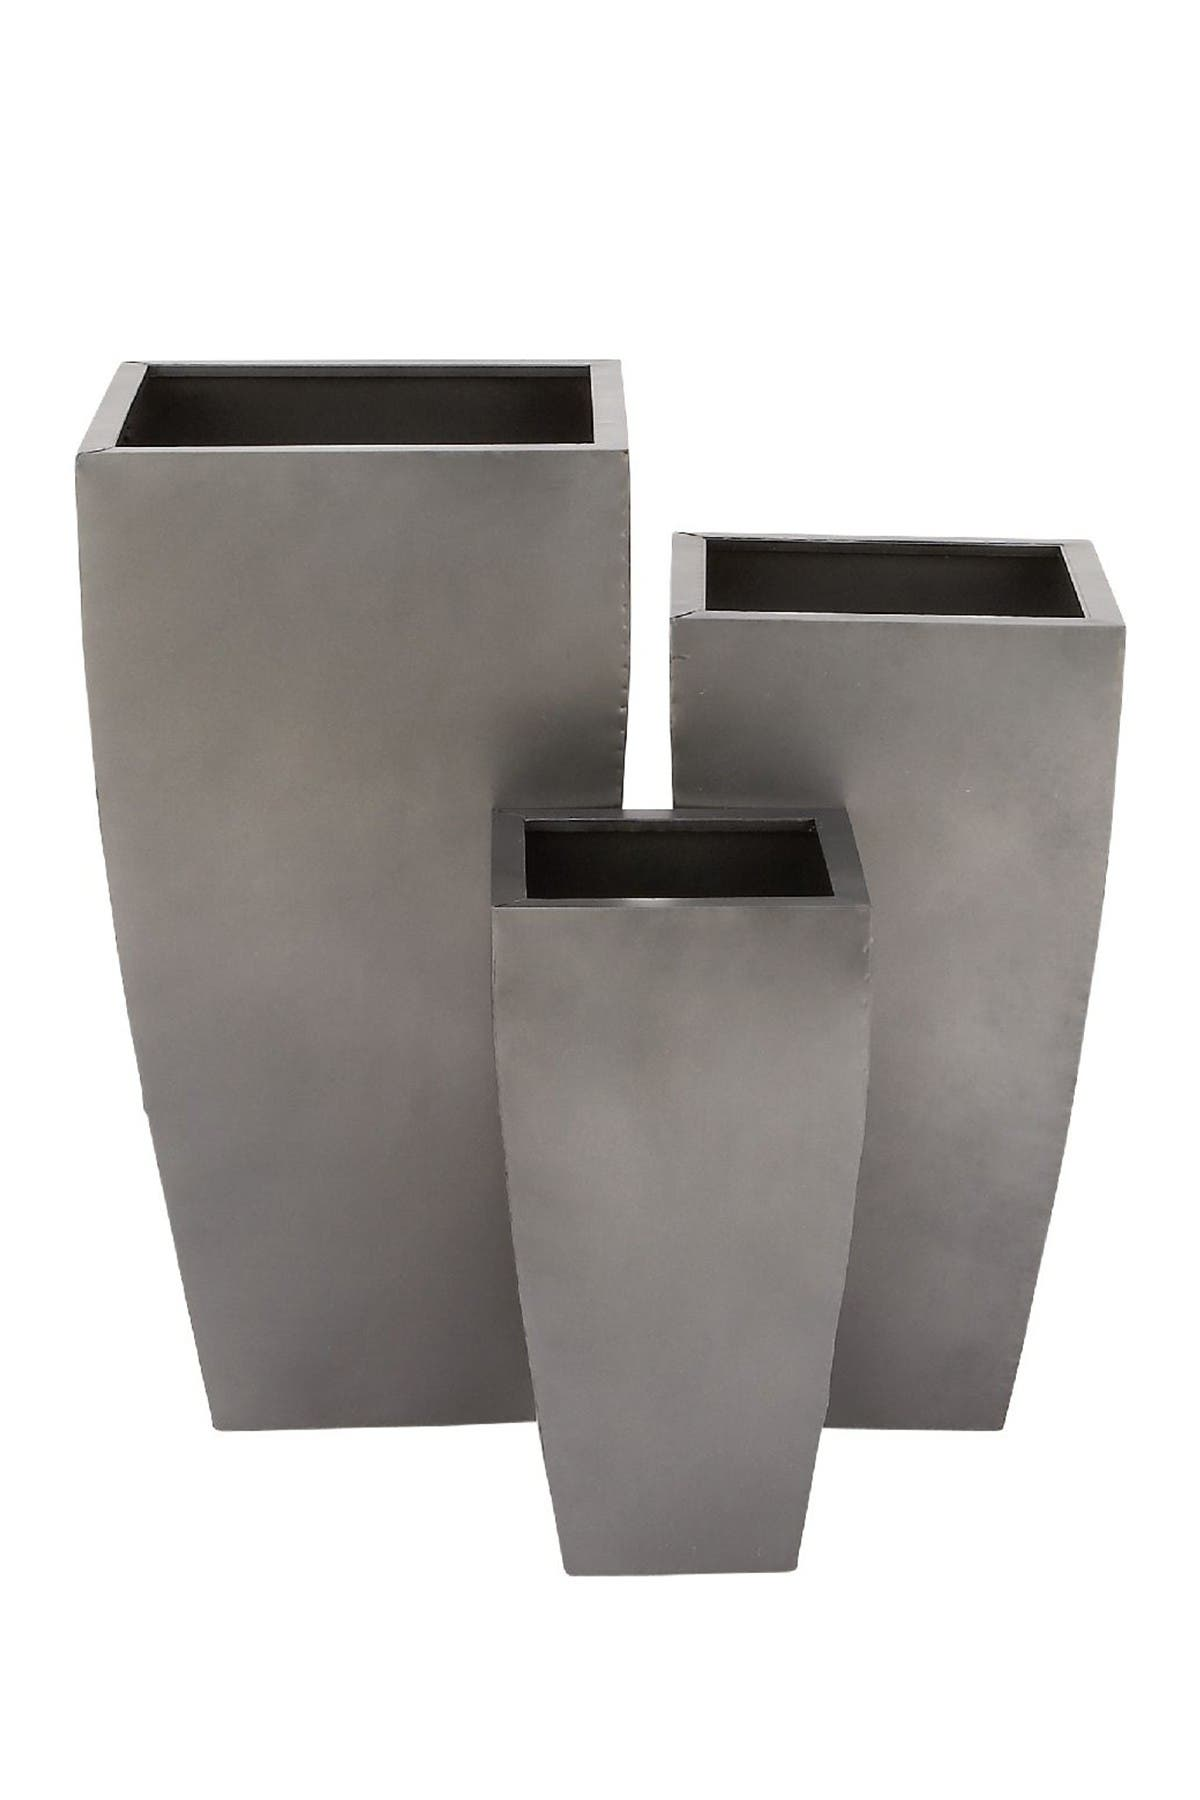 Image of Willow Row Contemporary Tapered Rectangular Gray Iron Planter - Set of 3